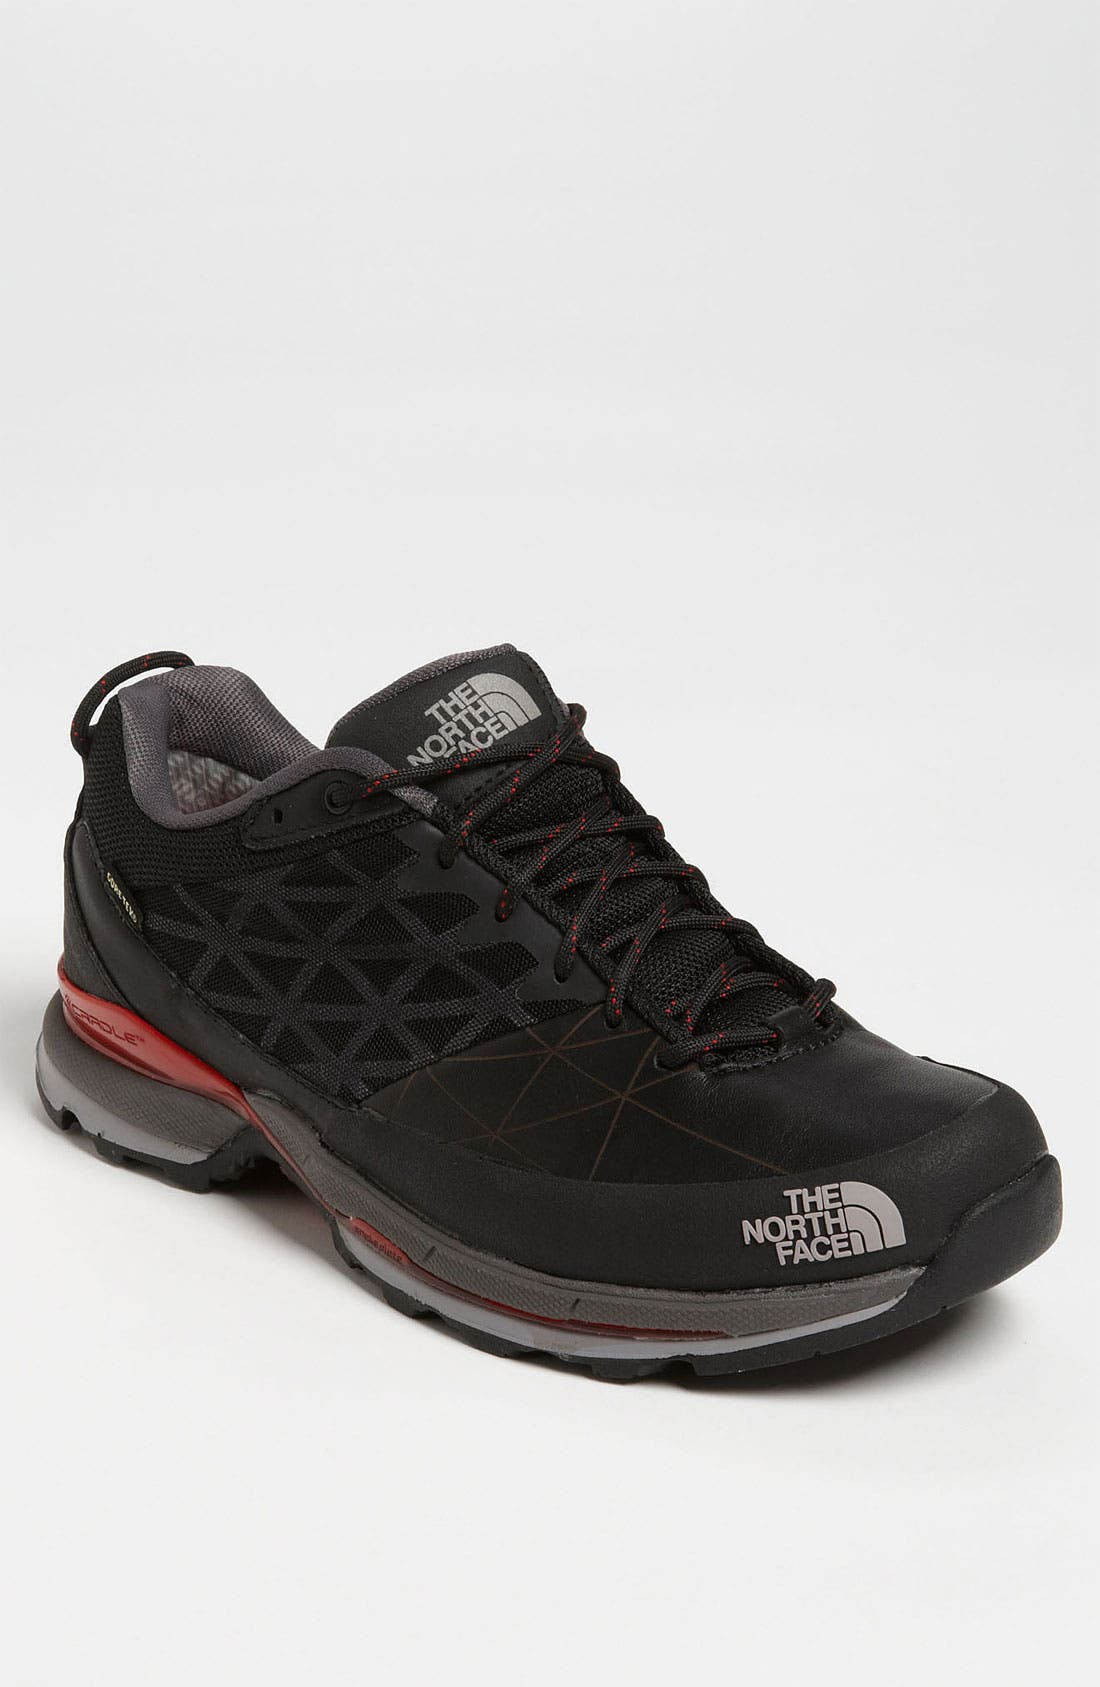 Main Image - The North Face 'Havoc Low GTX XCR' Hiking Shoes (Men)